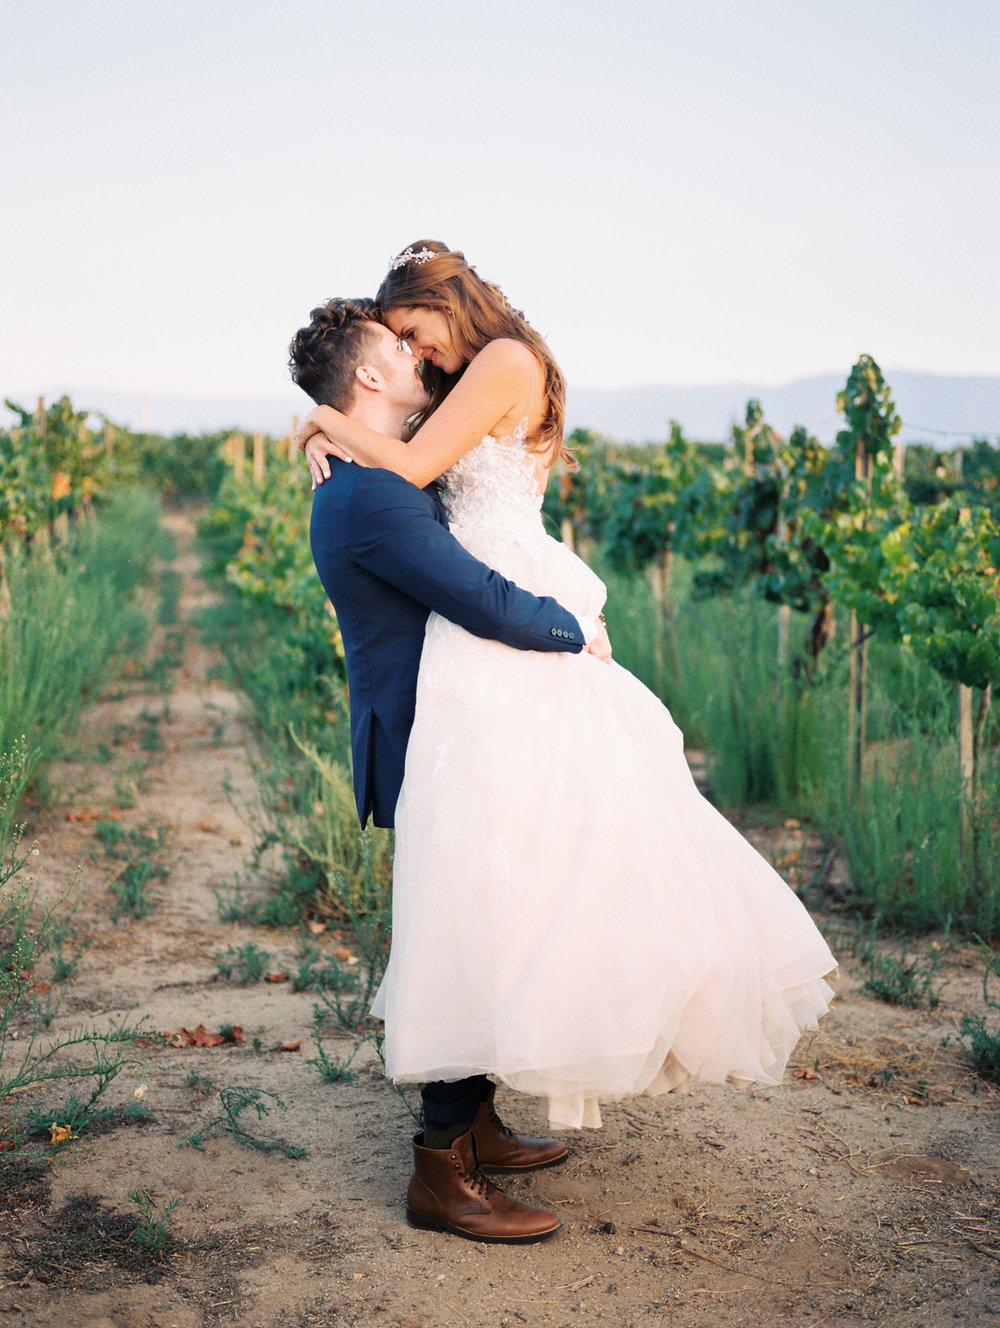 Groom smiling at bride  | Harrison & Jocelyne's gorgeous Temecula wedding day at Wiens Family Cellars captured by Temecula wedding photographers Betsy & John